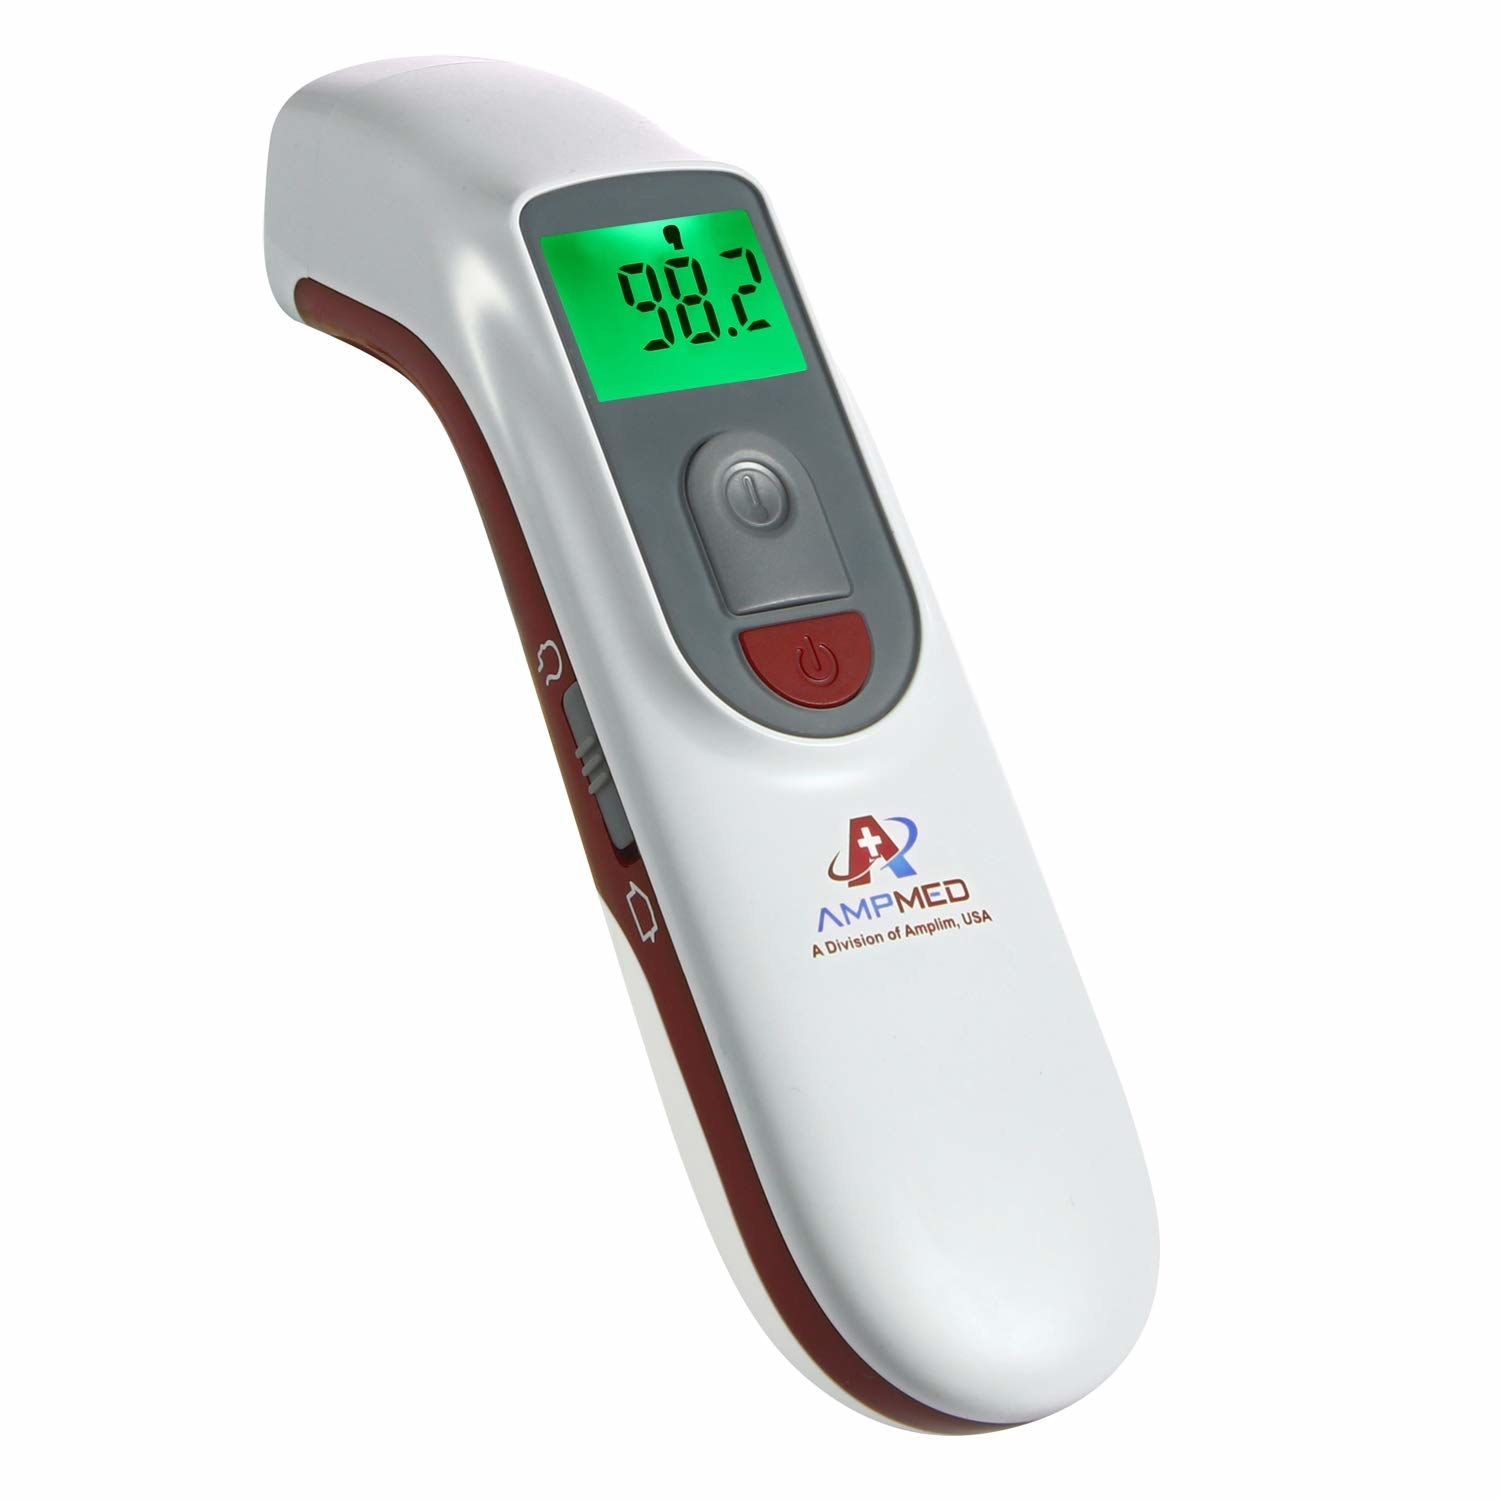 The thermometer with the display on